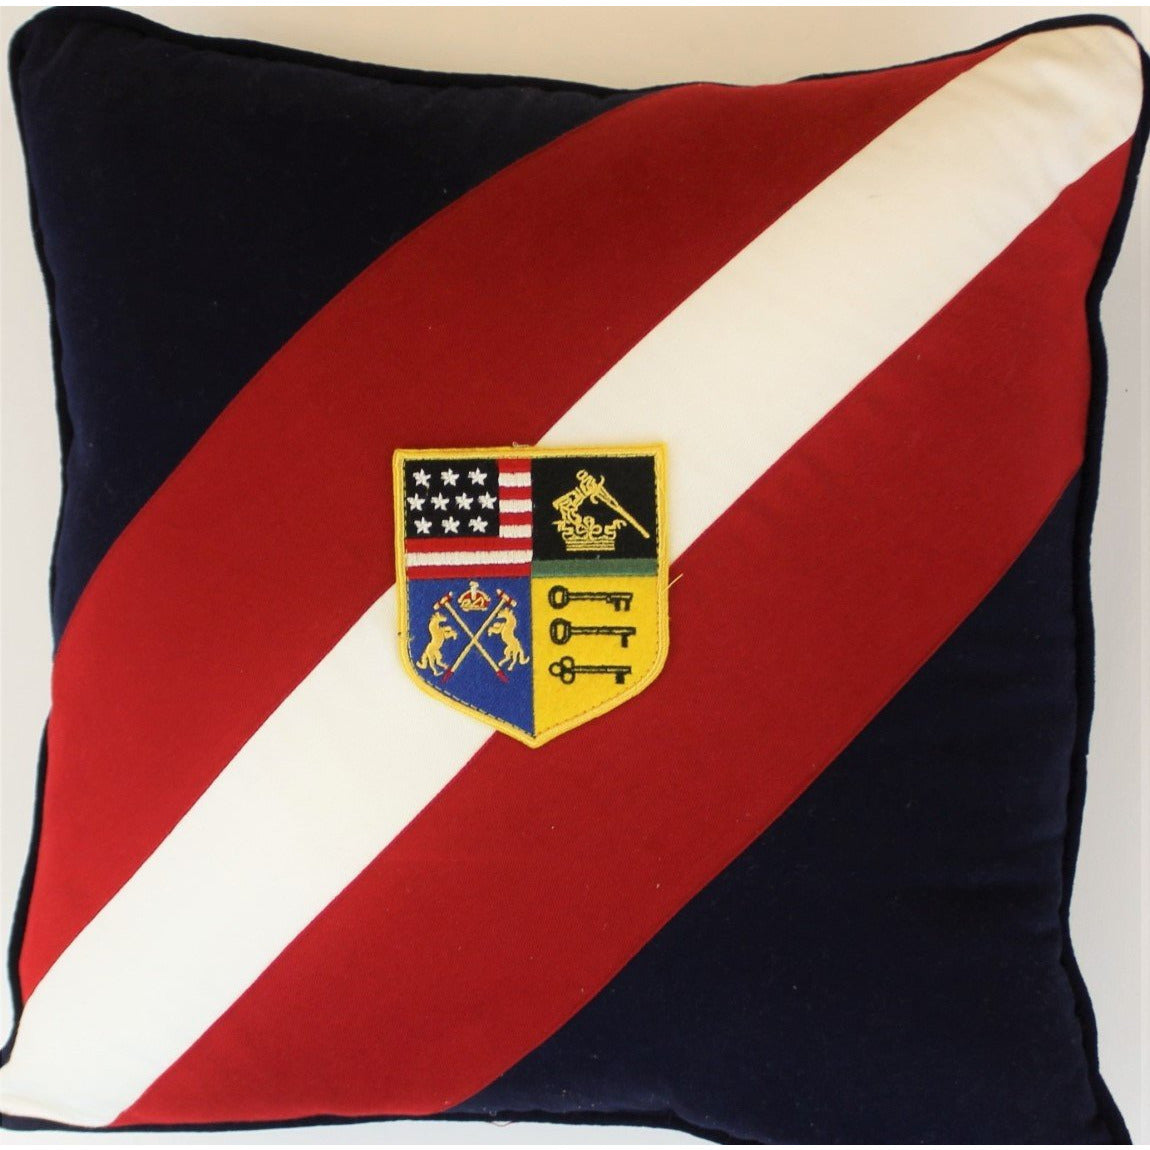 U.S. Polo Crest Pillow